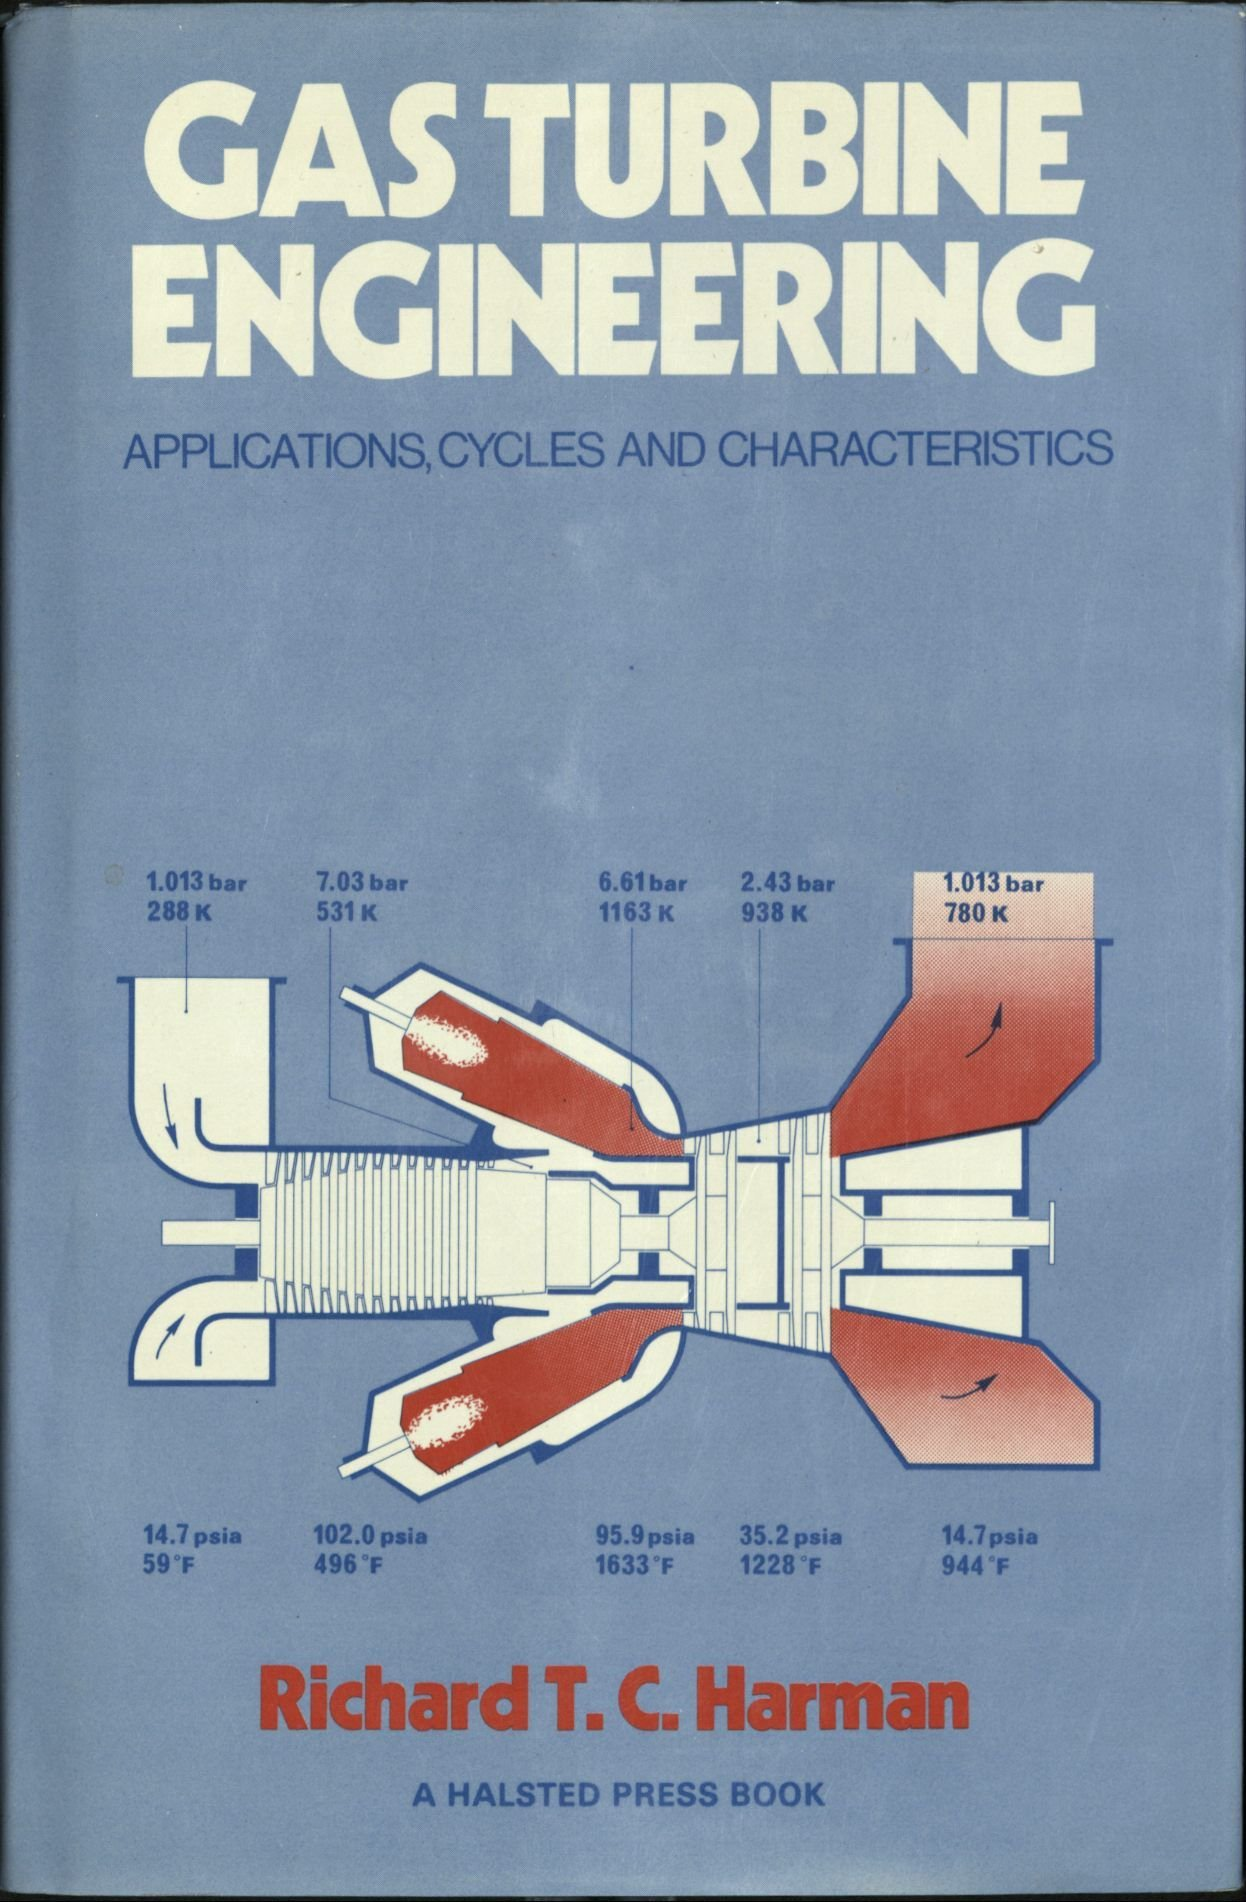 Gas Turbine Engineering Applications Cycles and Characteristics